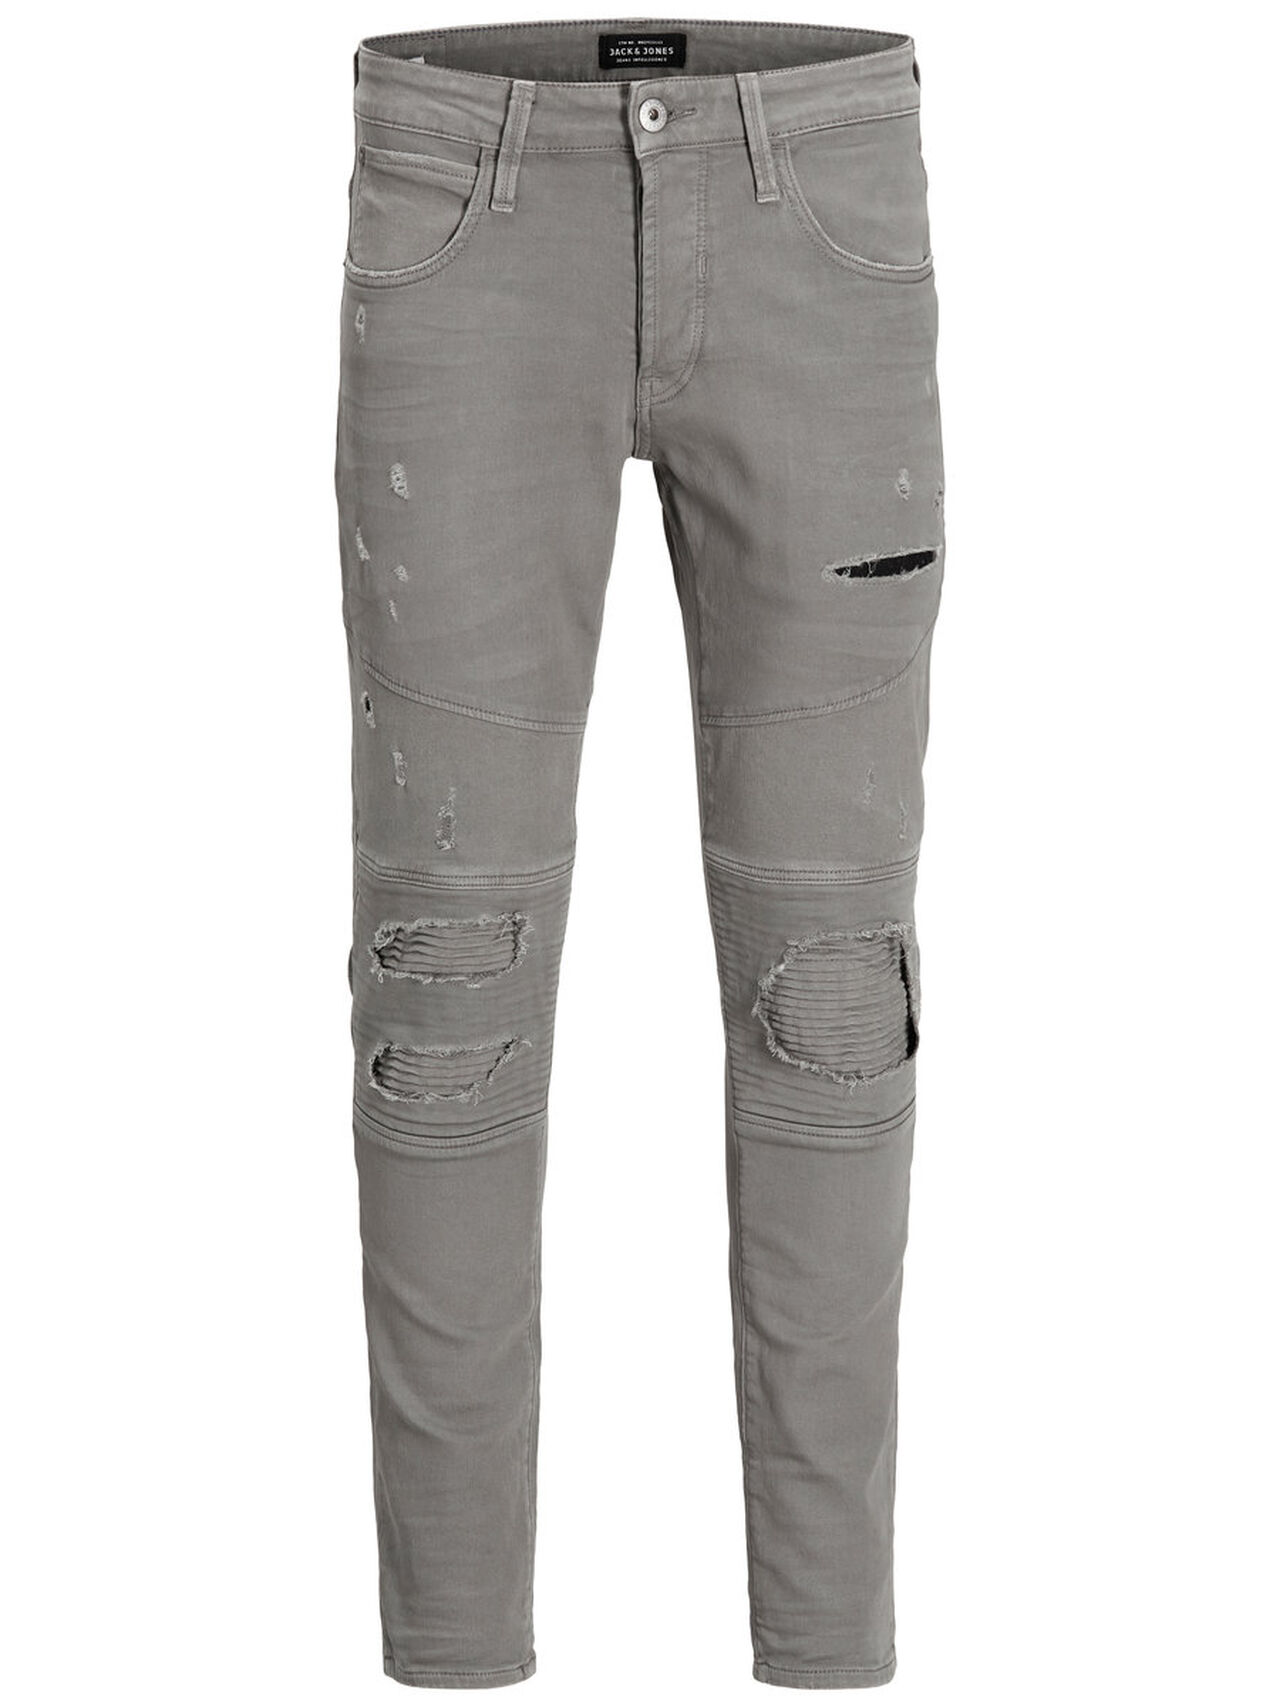 JACK & JONES Glenn Axx Biker Dark Grey Noos Trousers Men Grey